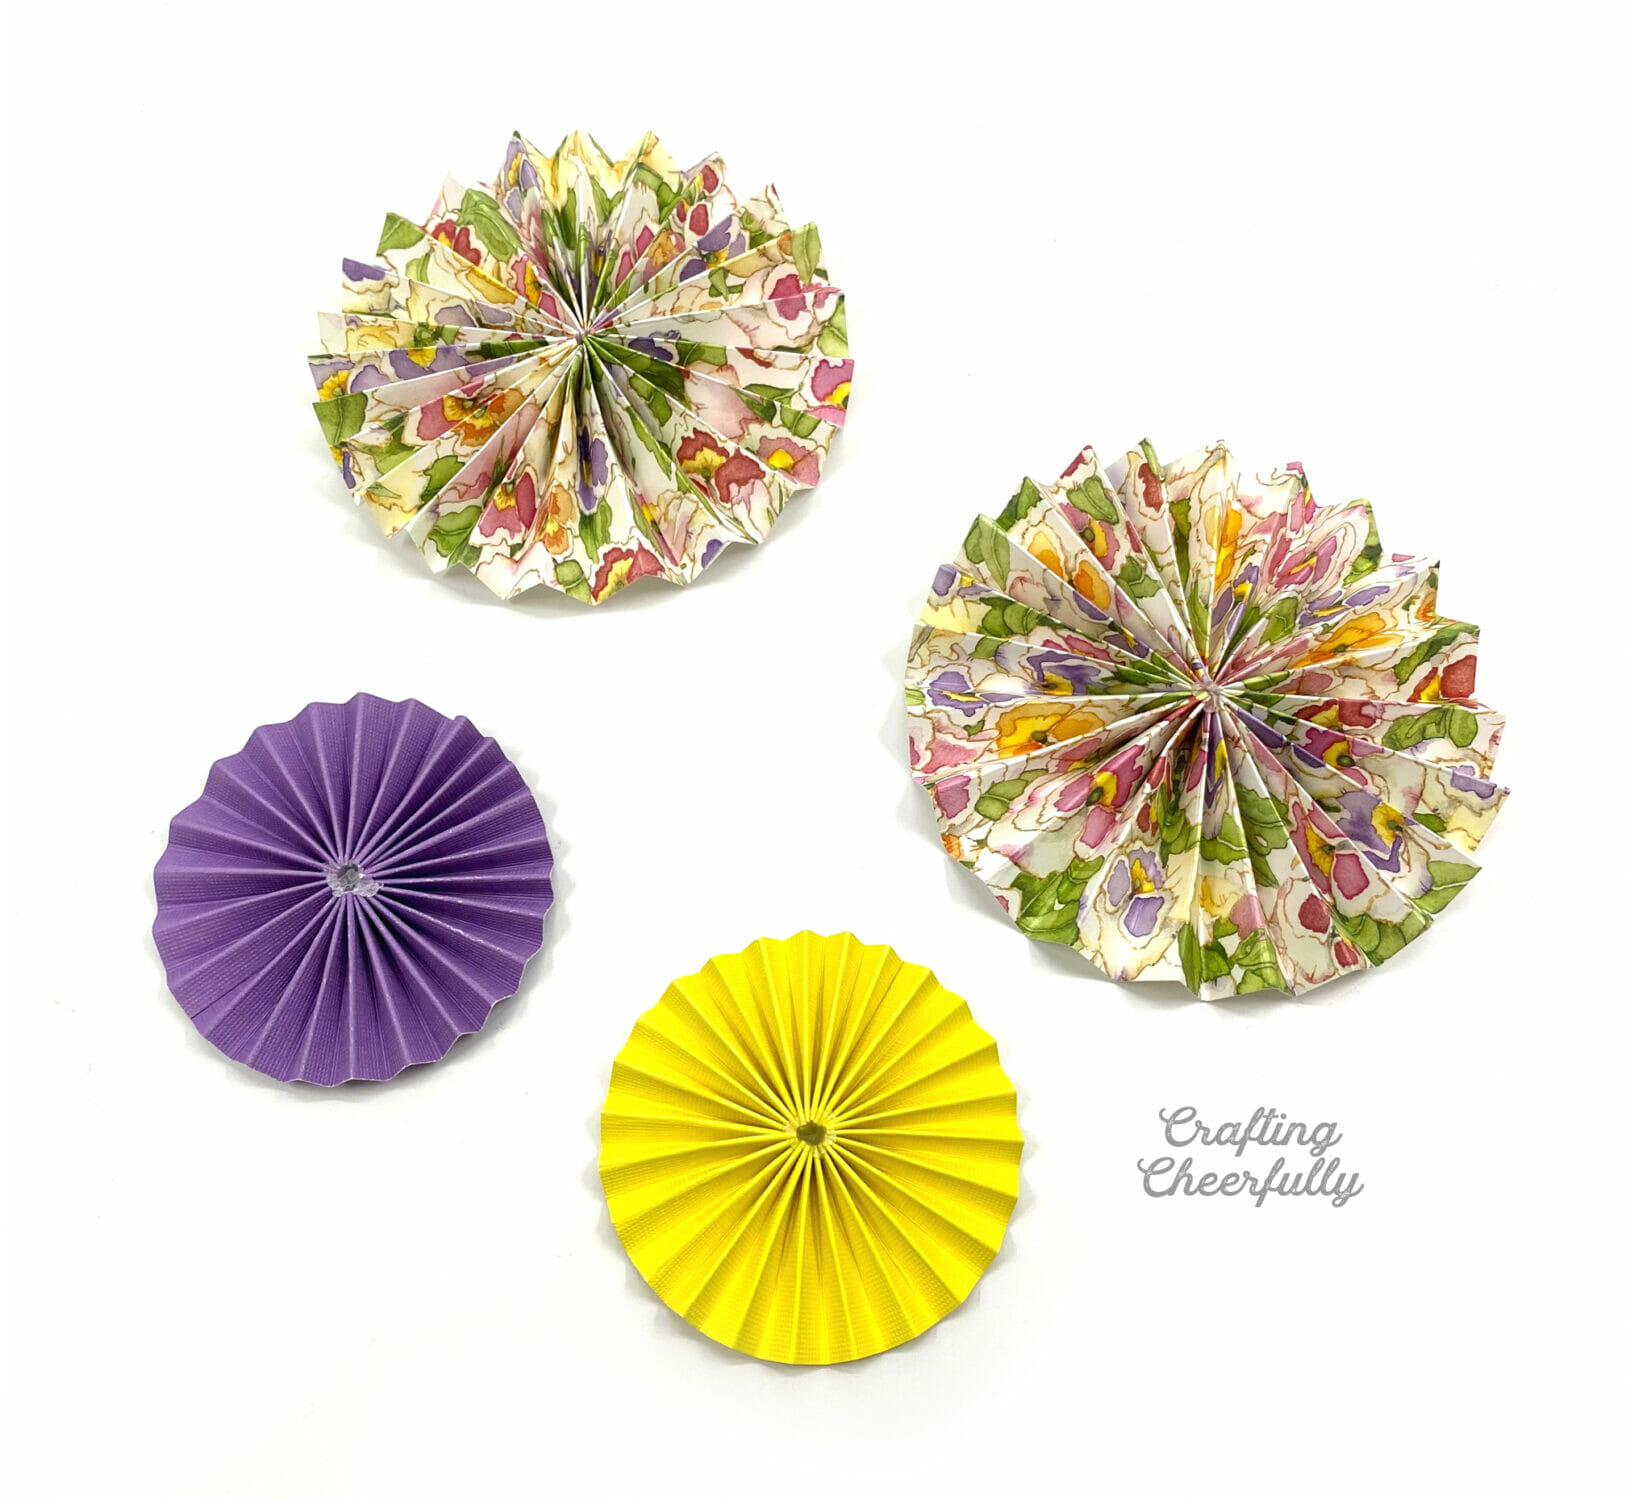 Paper rosettes lay on a white surface.